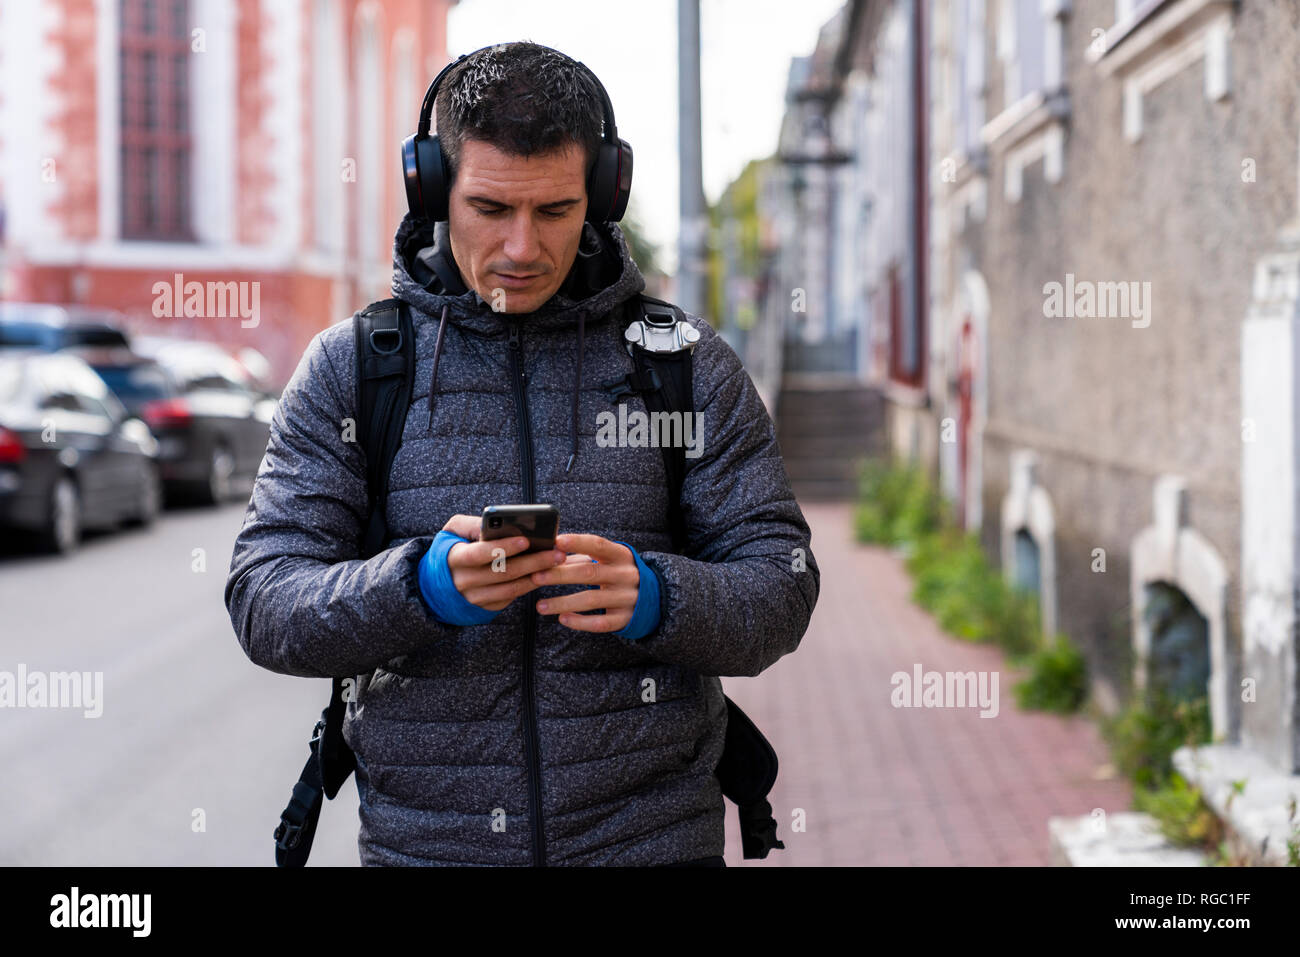 Man in the city on the go with cell phone and headphones - Stock Image